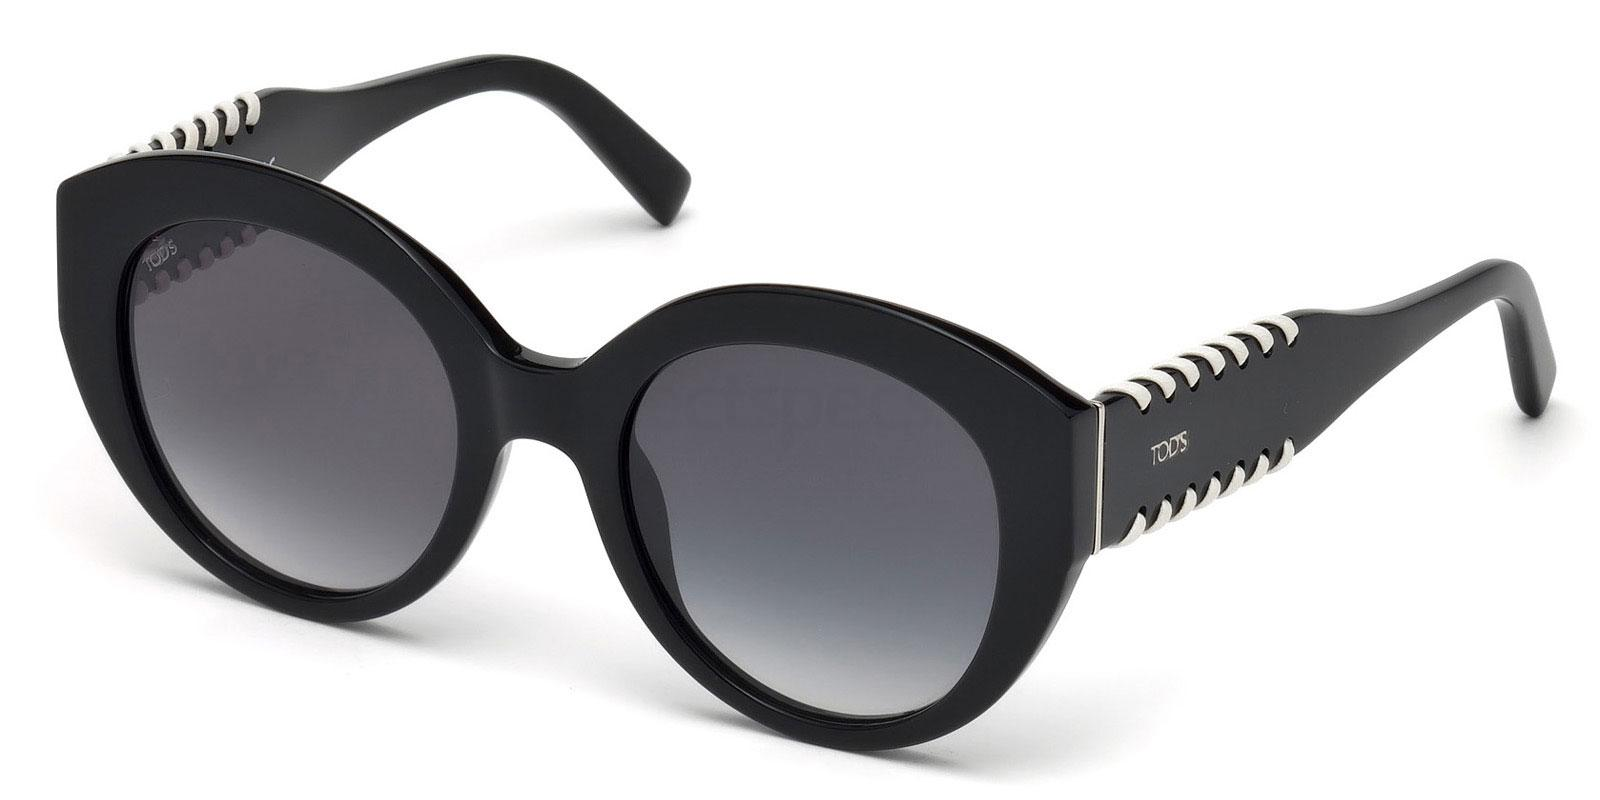 01B TO0194 Sunglasses, TODS